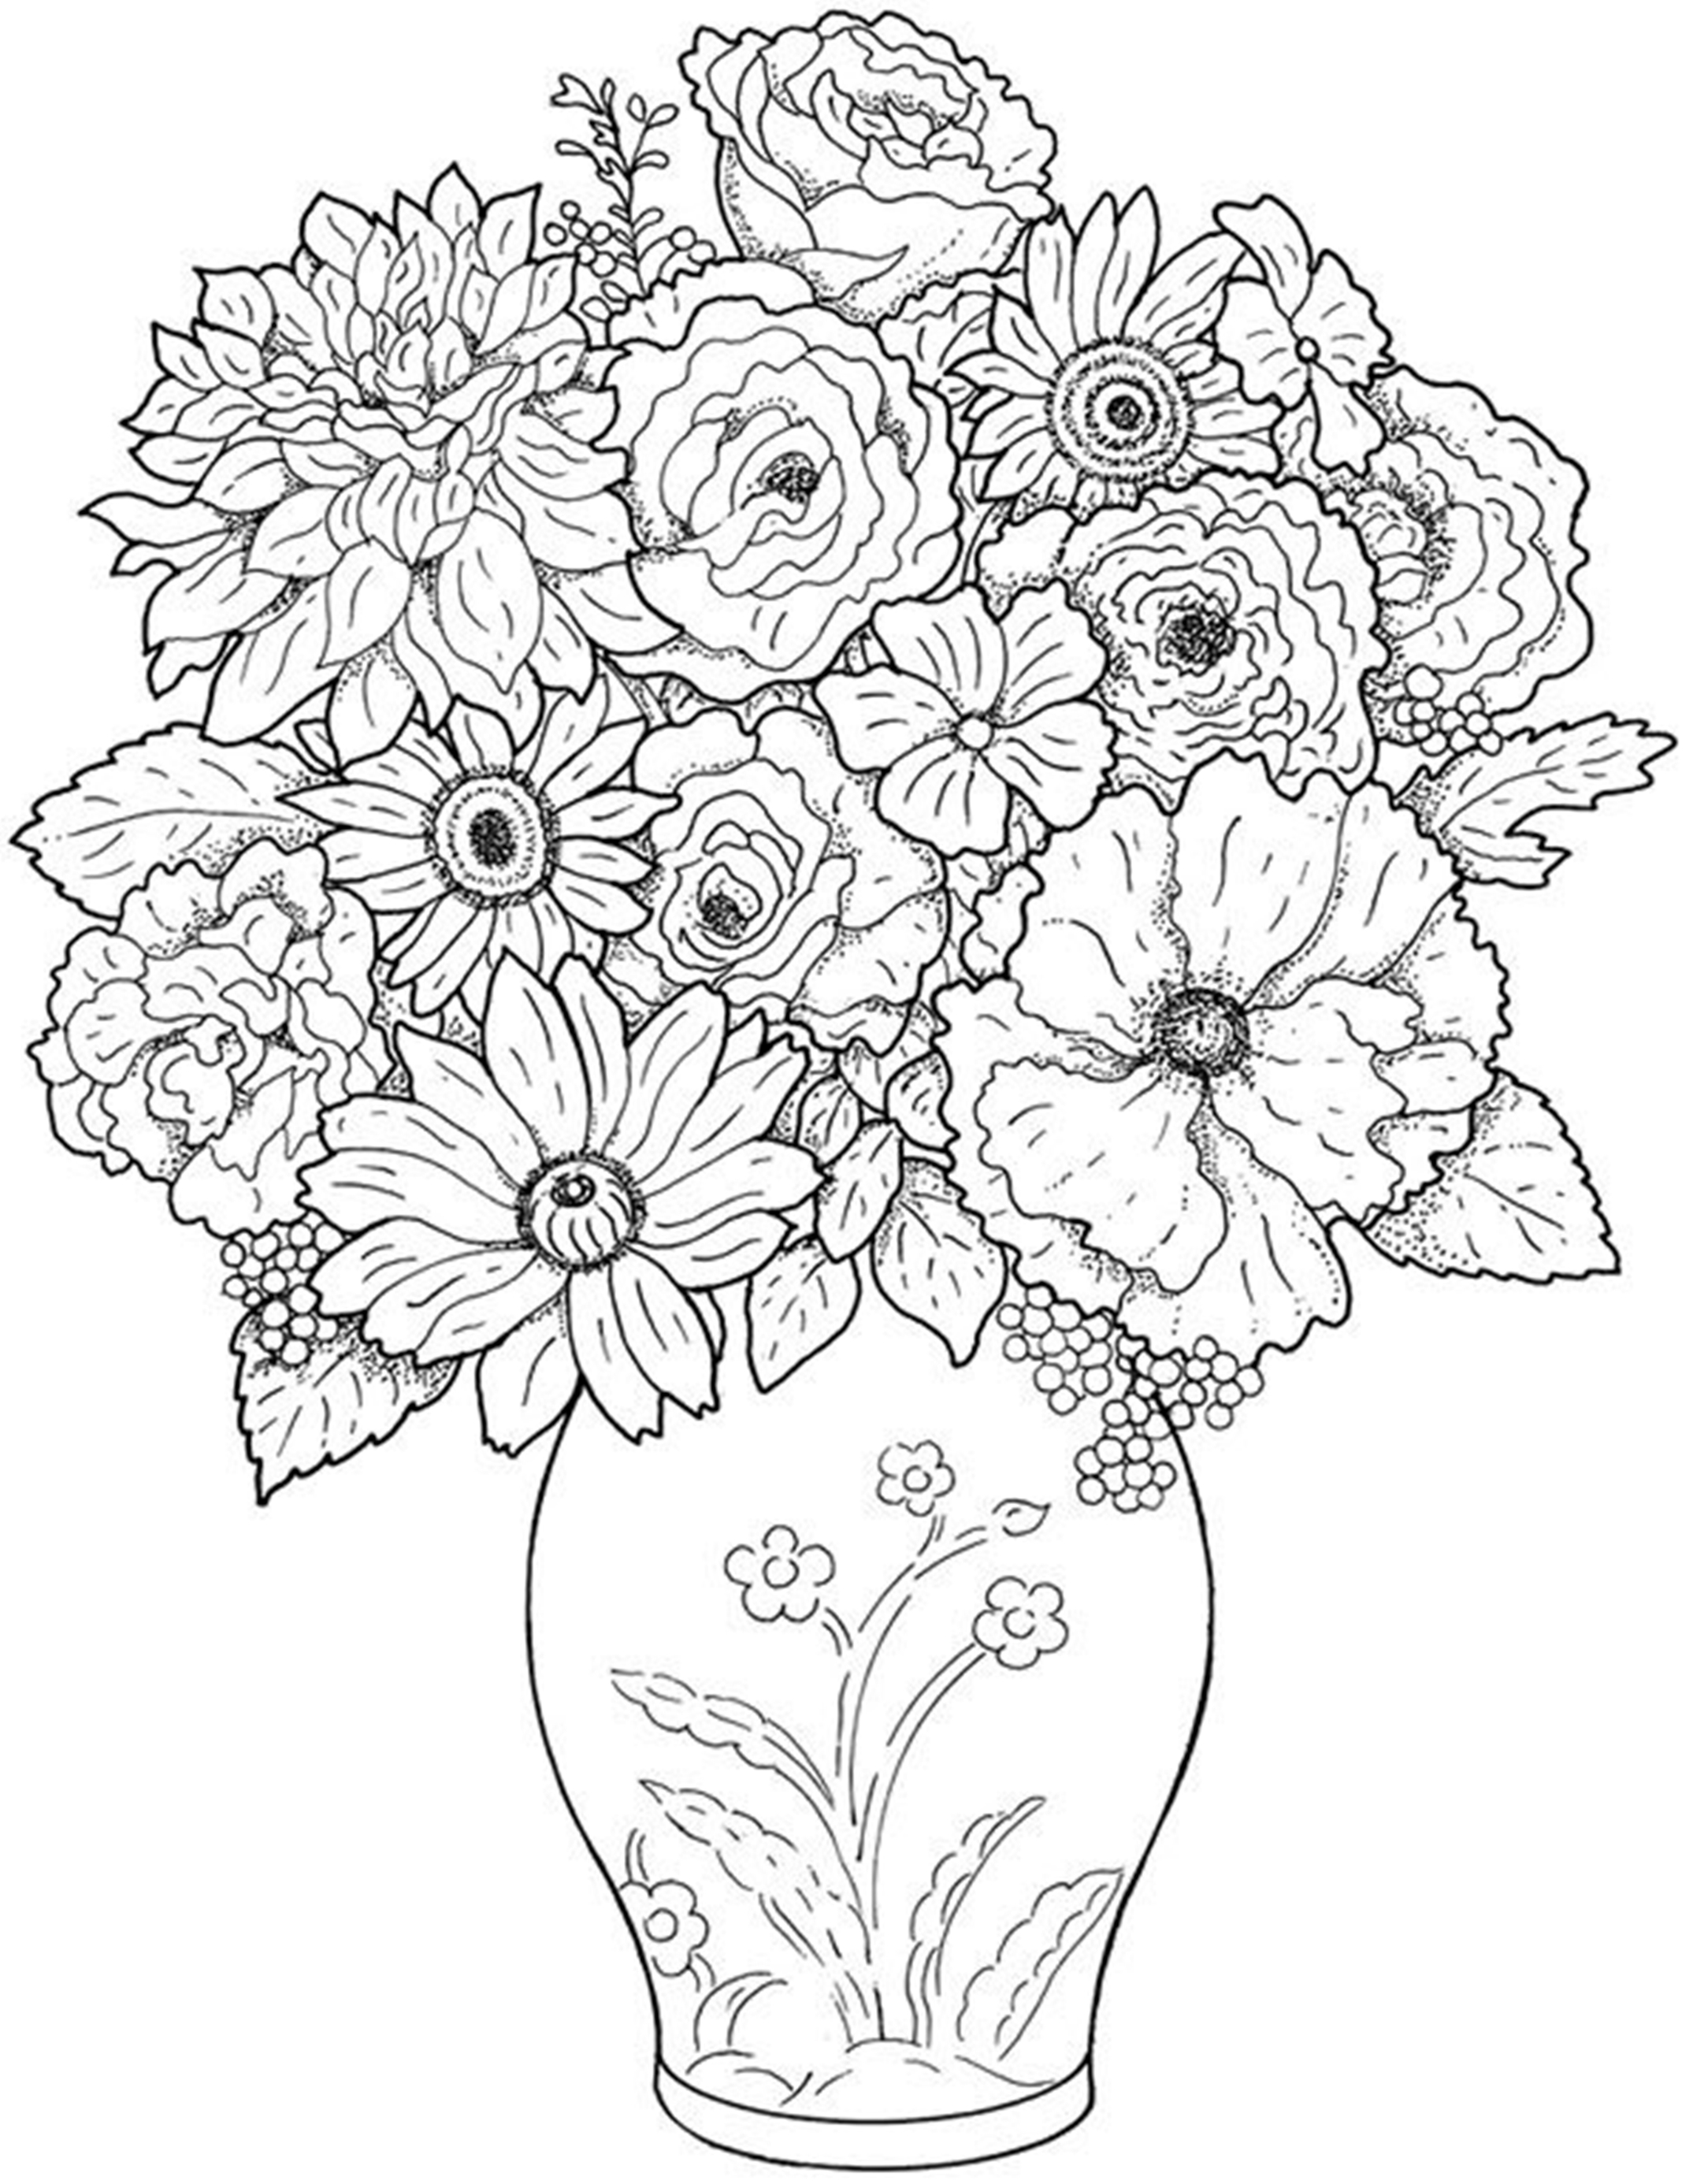 coloring picture of flower flowers coloring pages coloringpages1001com flower picture coloring of